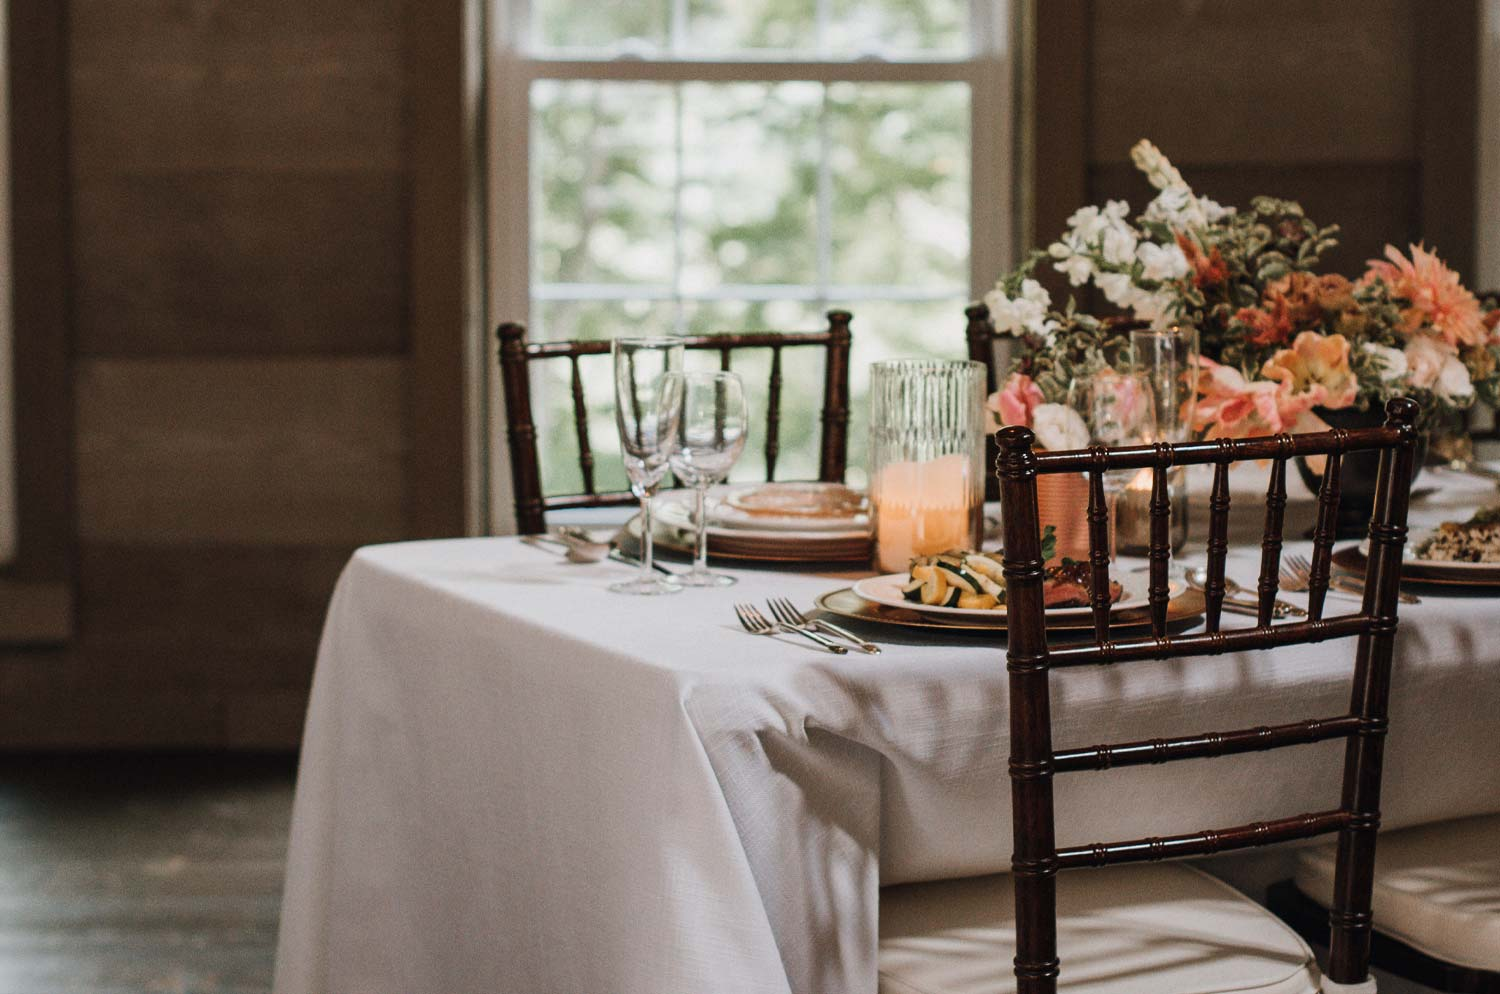 Ate O A Catering: Roxbury Barn and Estate's exclusive caterer